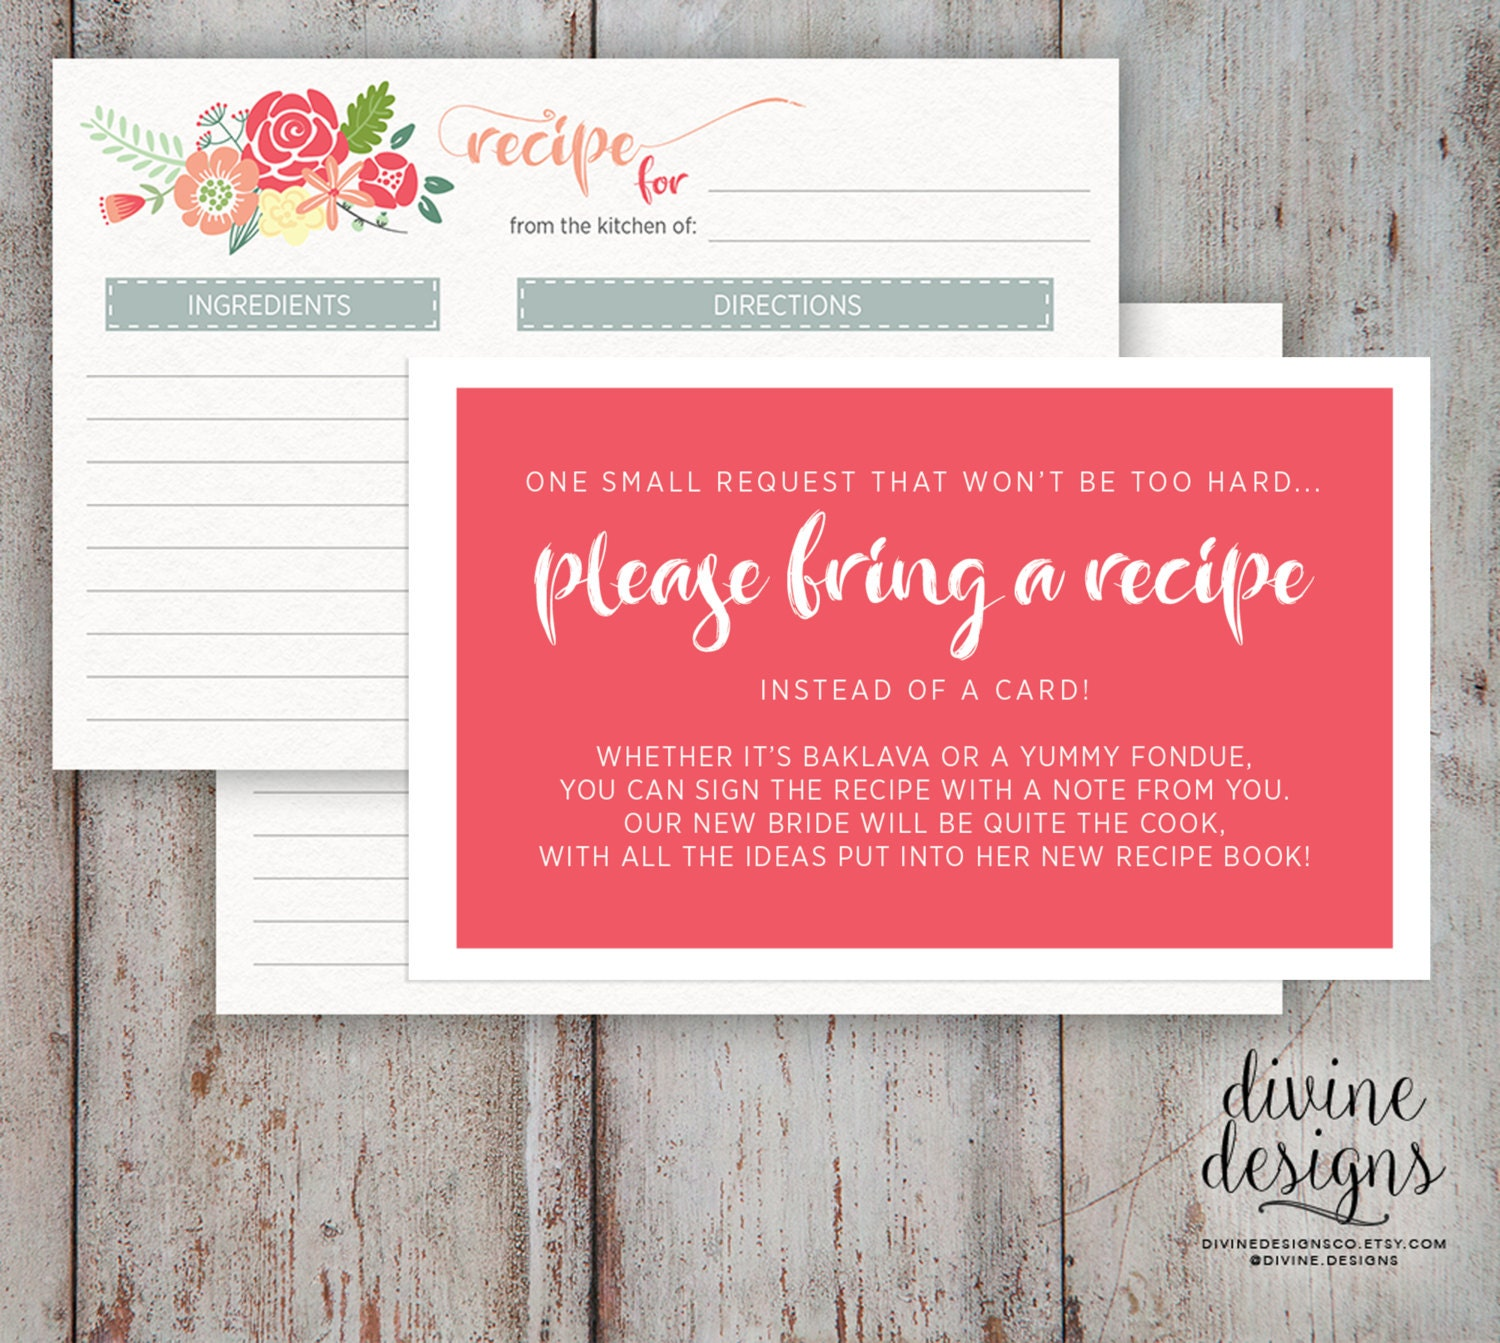 Recipe Card Bridal Shower Please Bring a Recipe Cute | Etsy